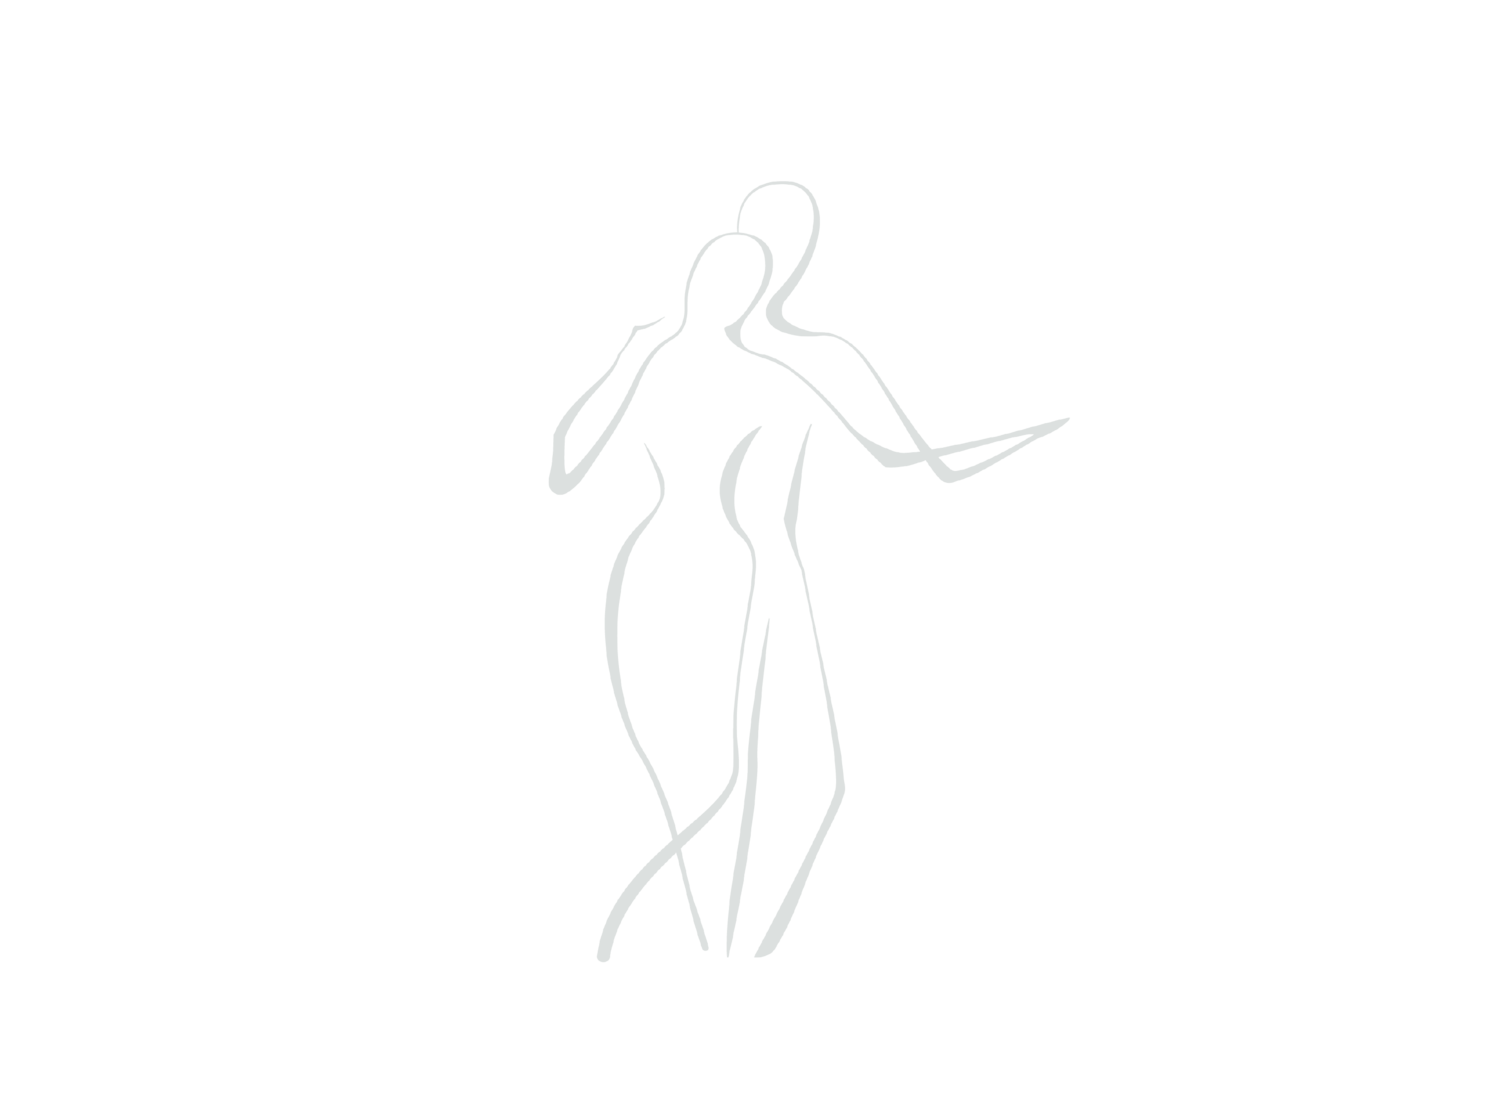 Ballroom Dance Chicago